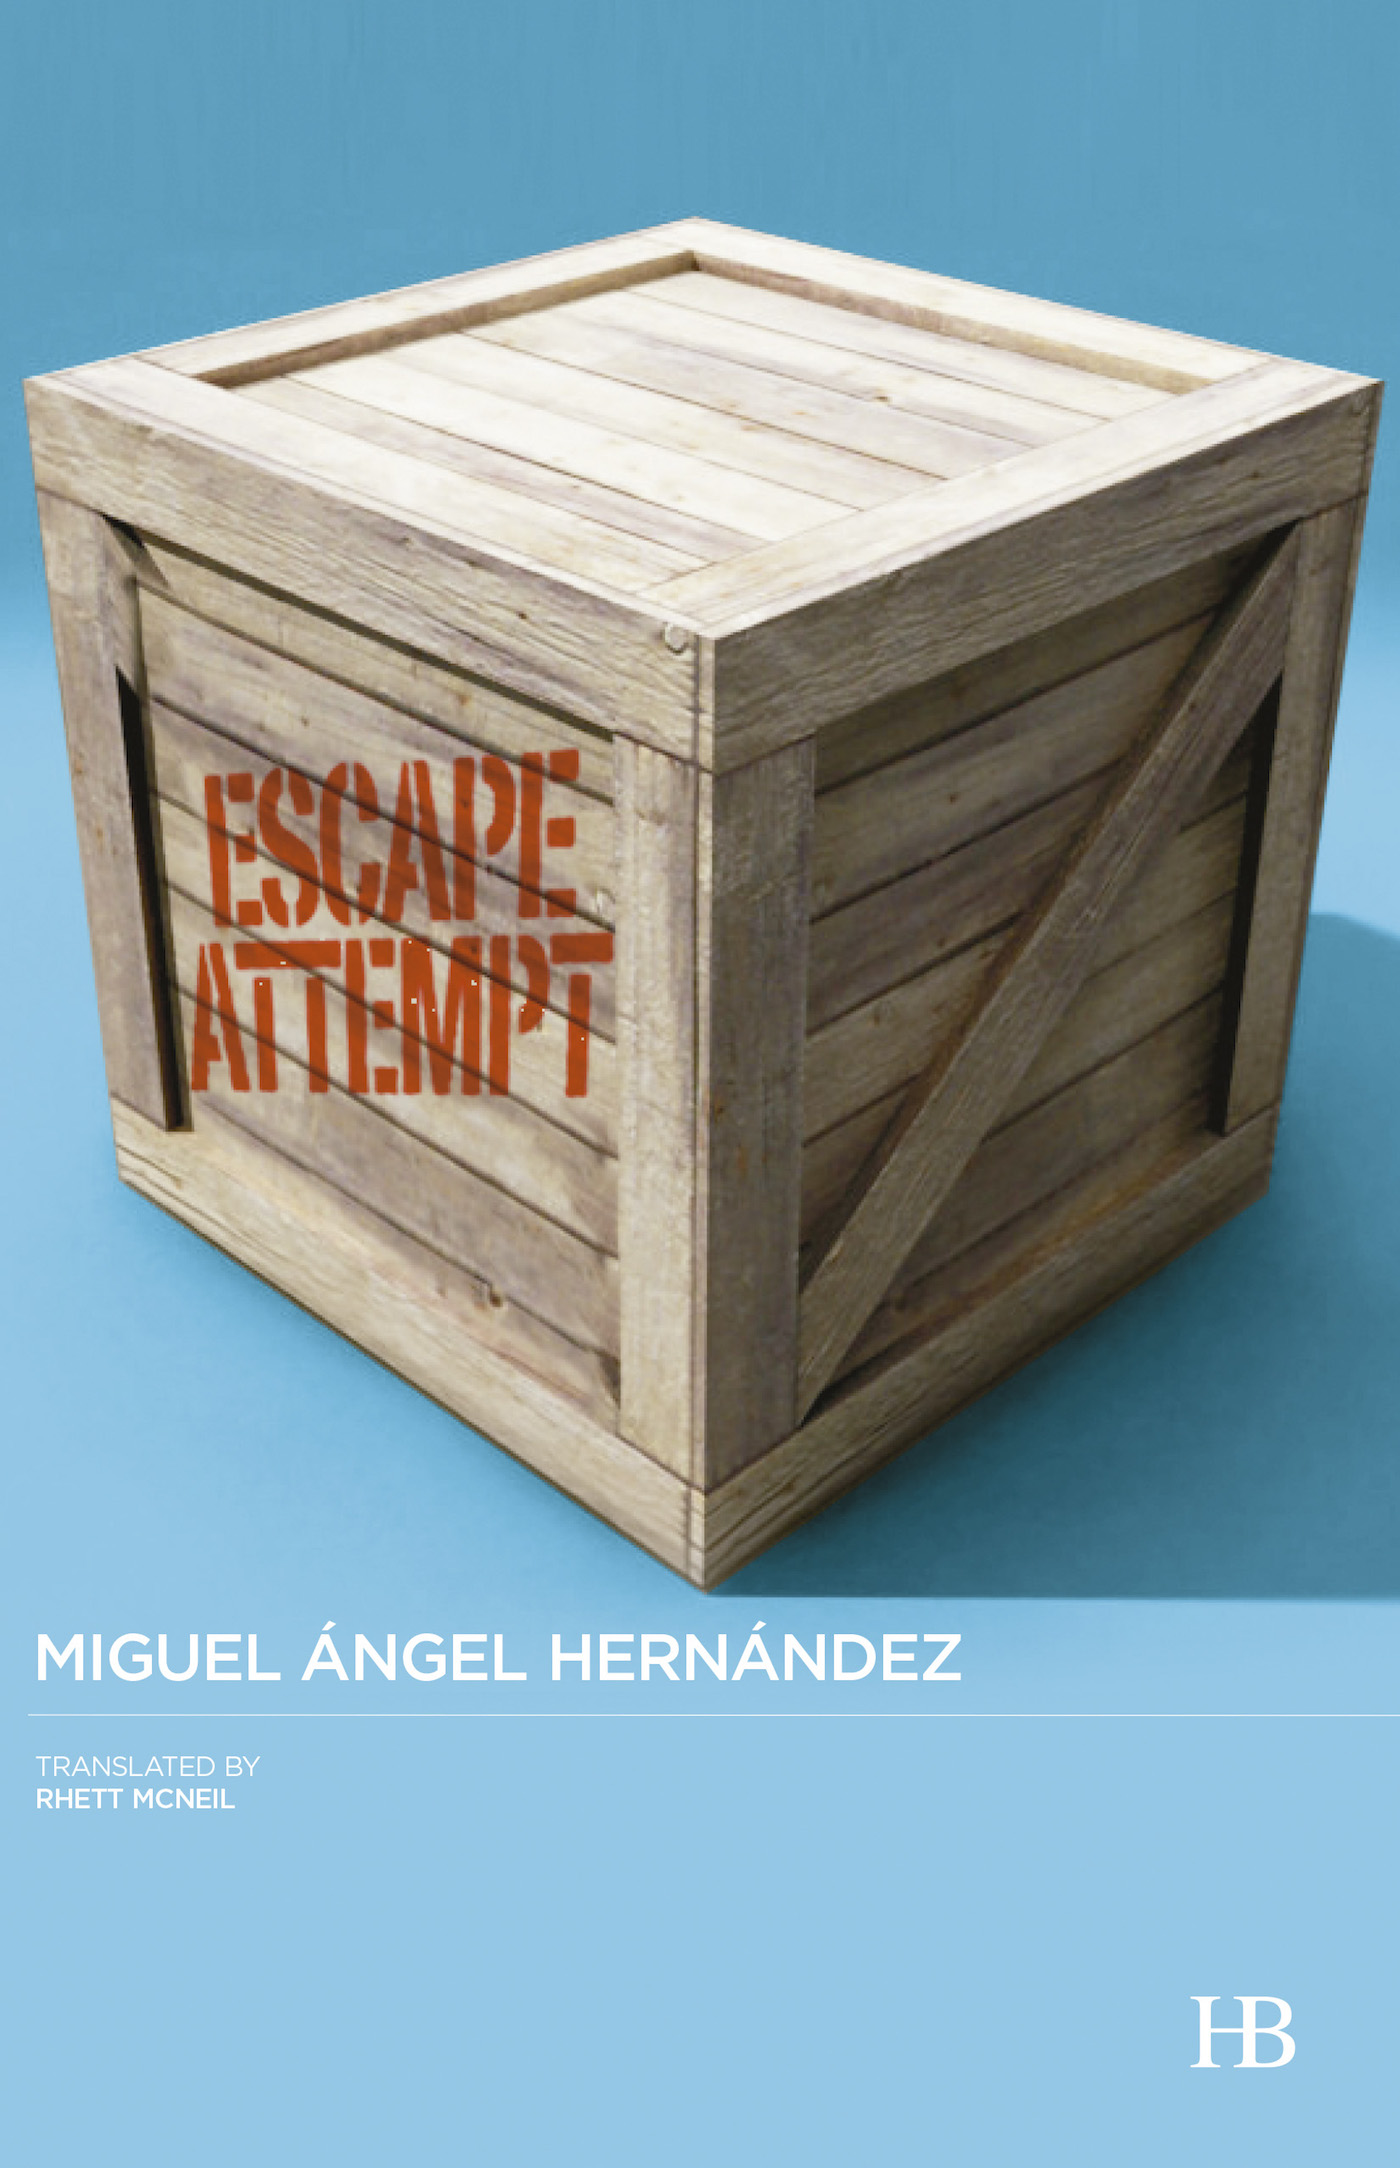 'Escape Attempt' by Miguel Angel Hernández, translated by Rhett McNeil, and published by Hispabooks (image courtesy Hispabooks)